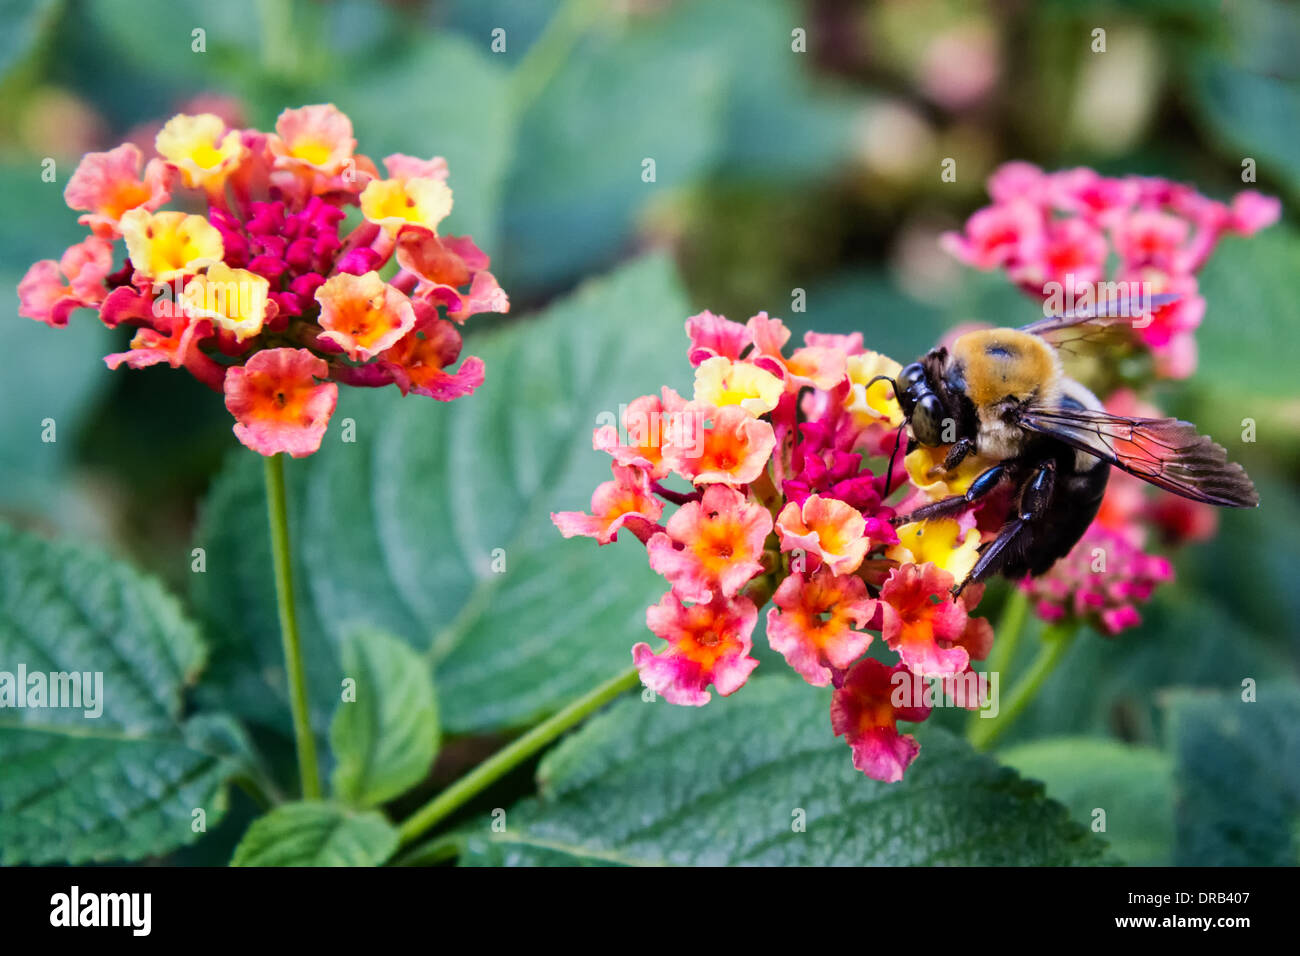 A bee (Hymenoptera) gathers pollen from flowers. - Stock Image